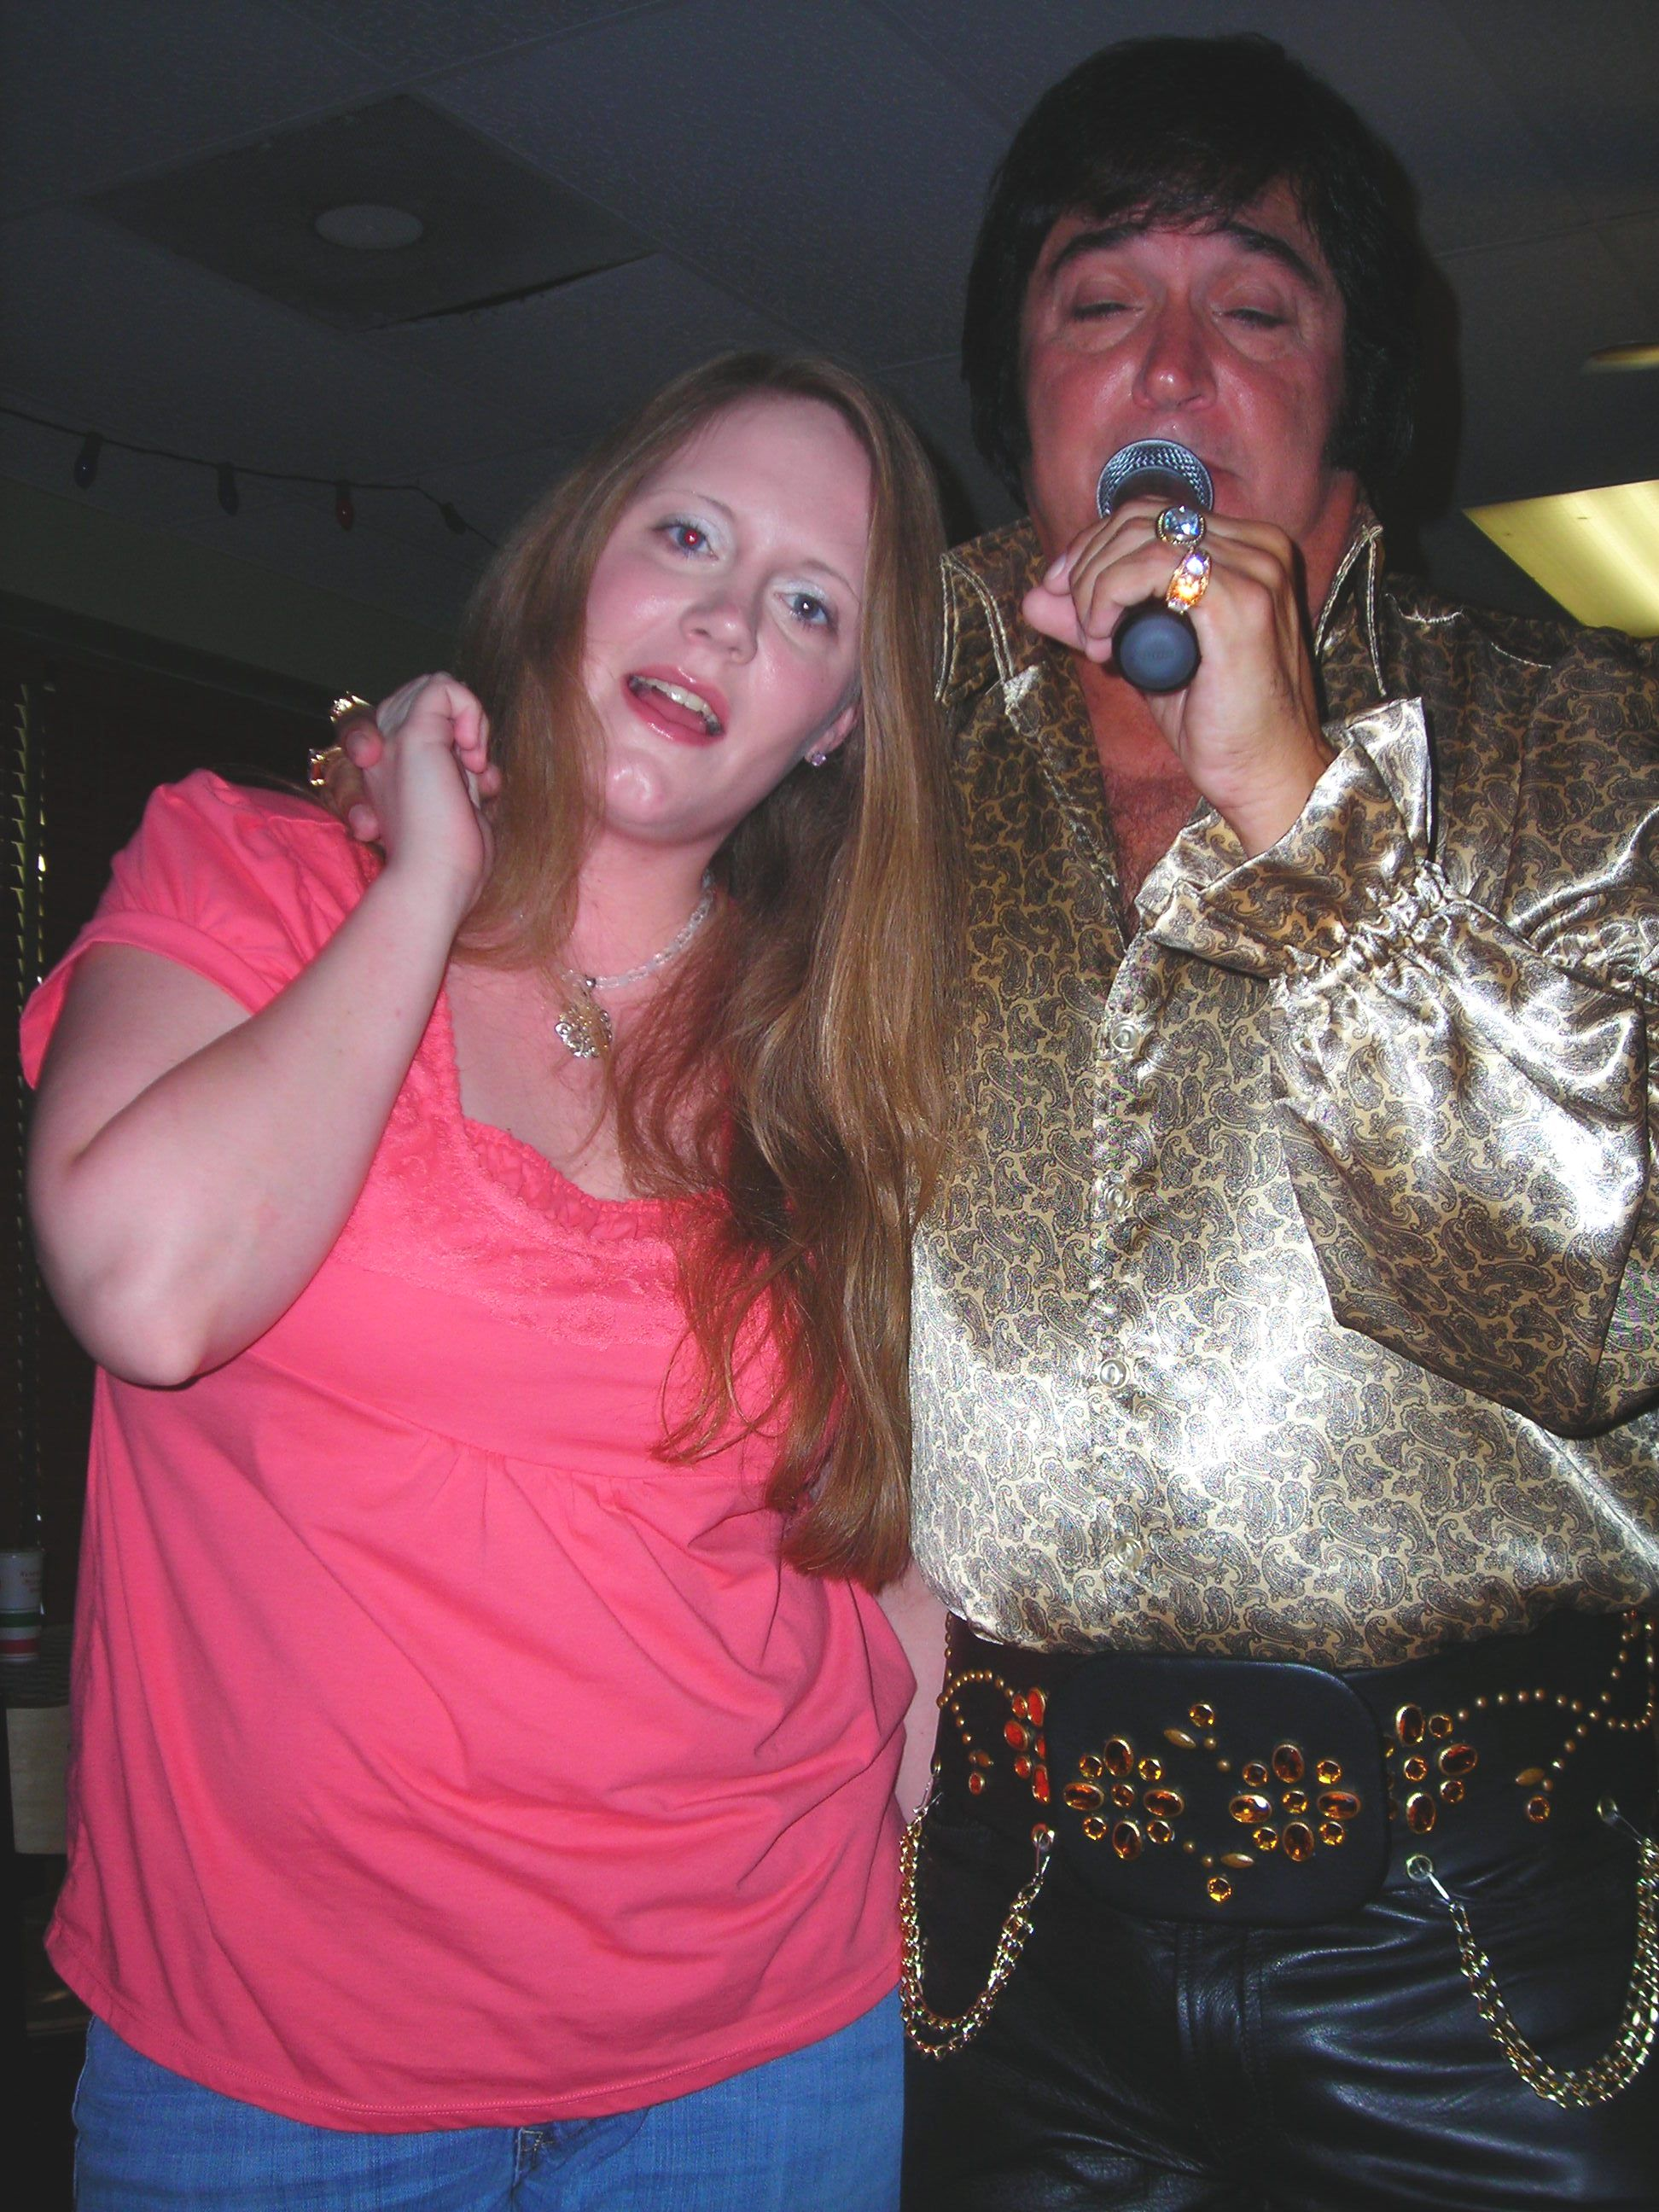 elvis with my baby girl (she's an angel, but the devil in disguise!)